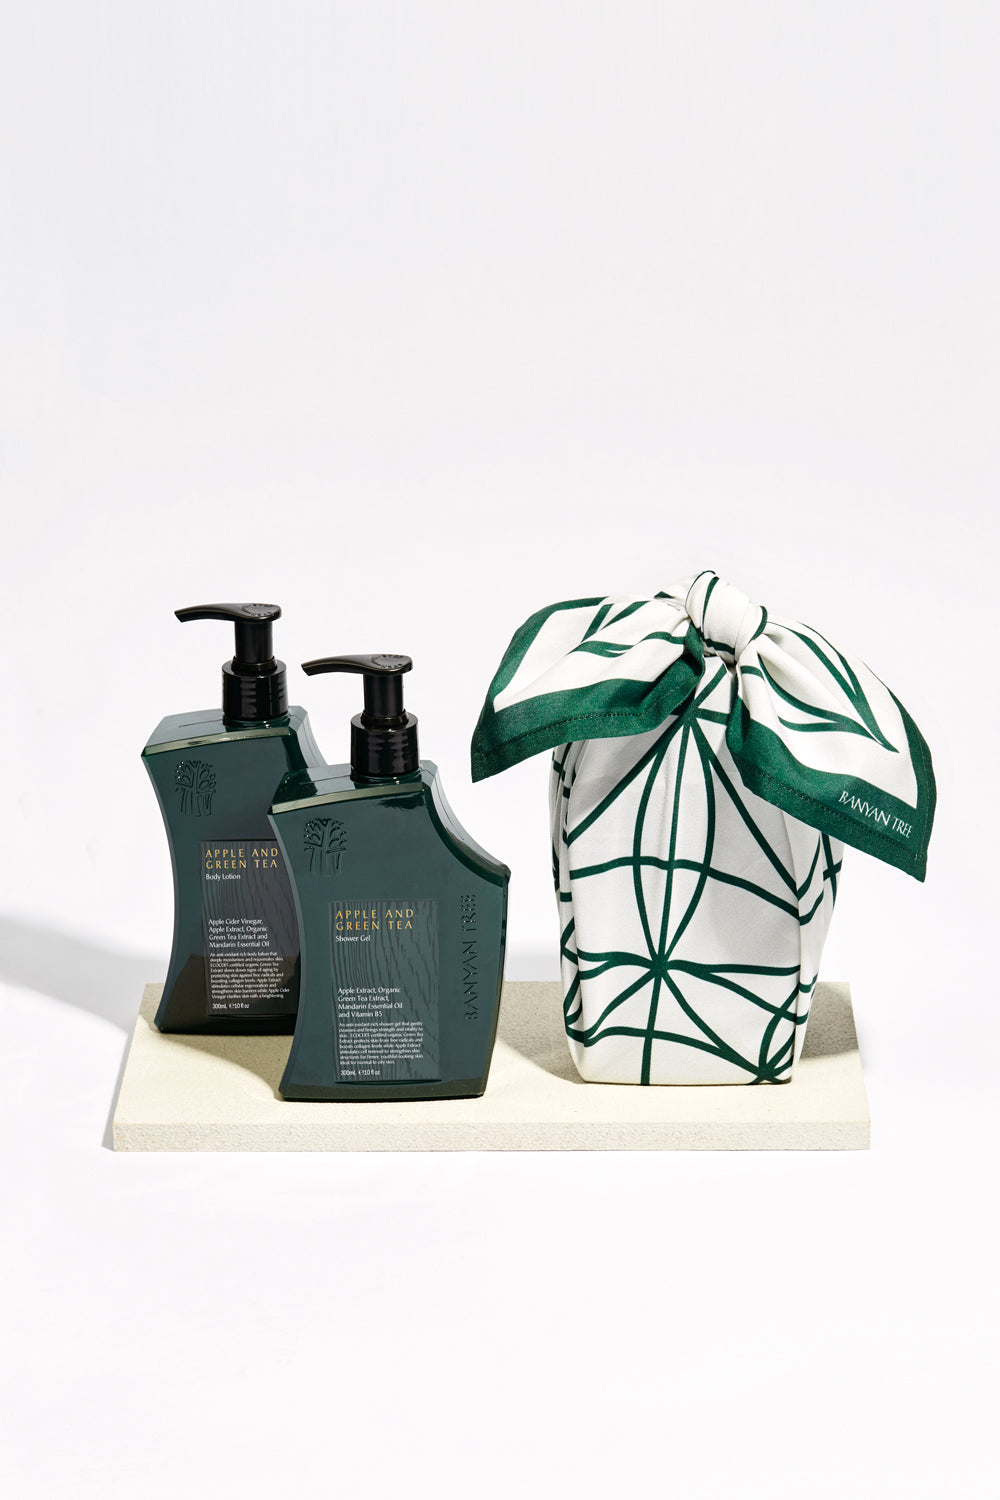 Apple and Green Tea Purity Gift Set - Banyan Tree Gallery